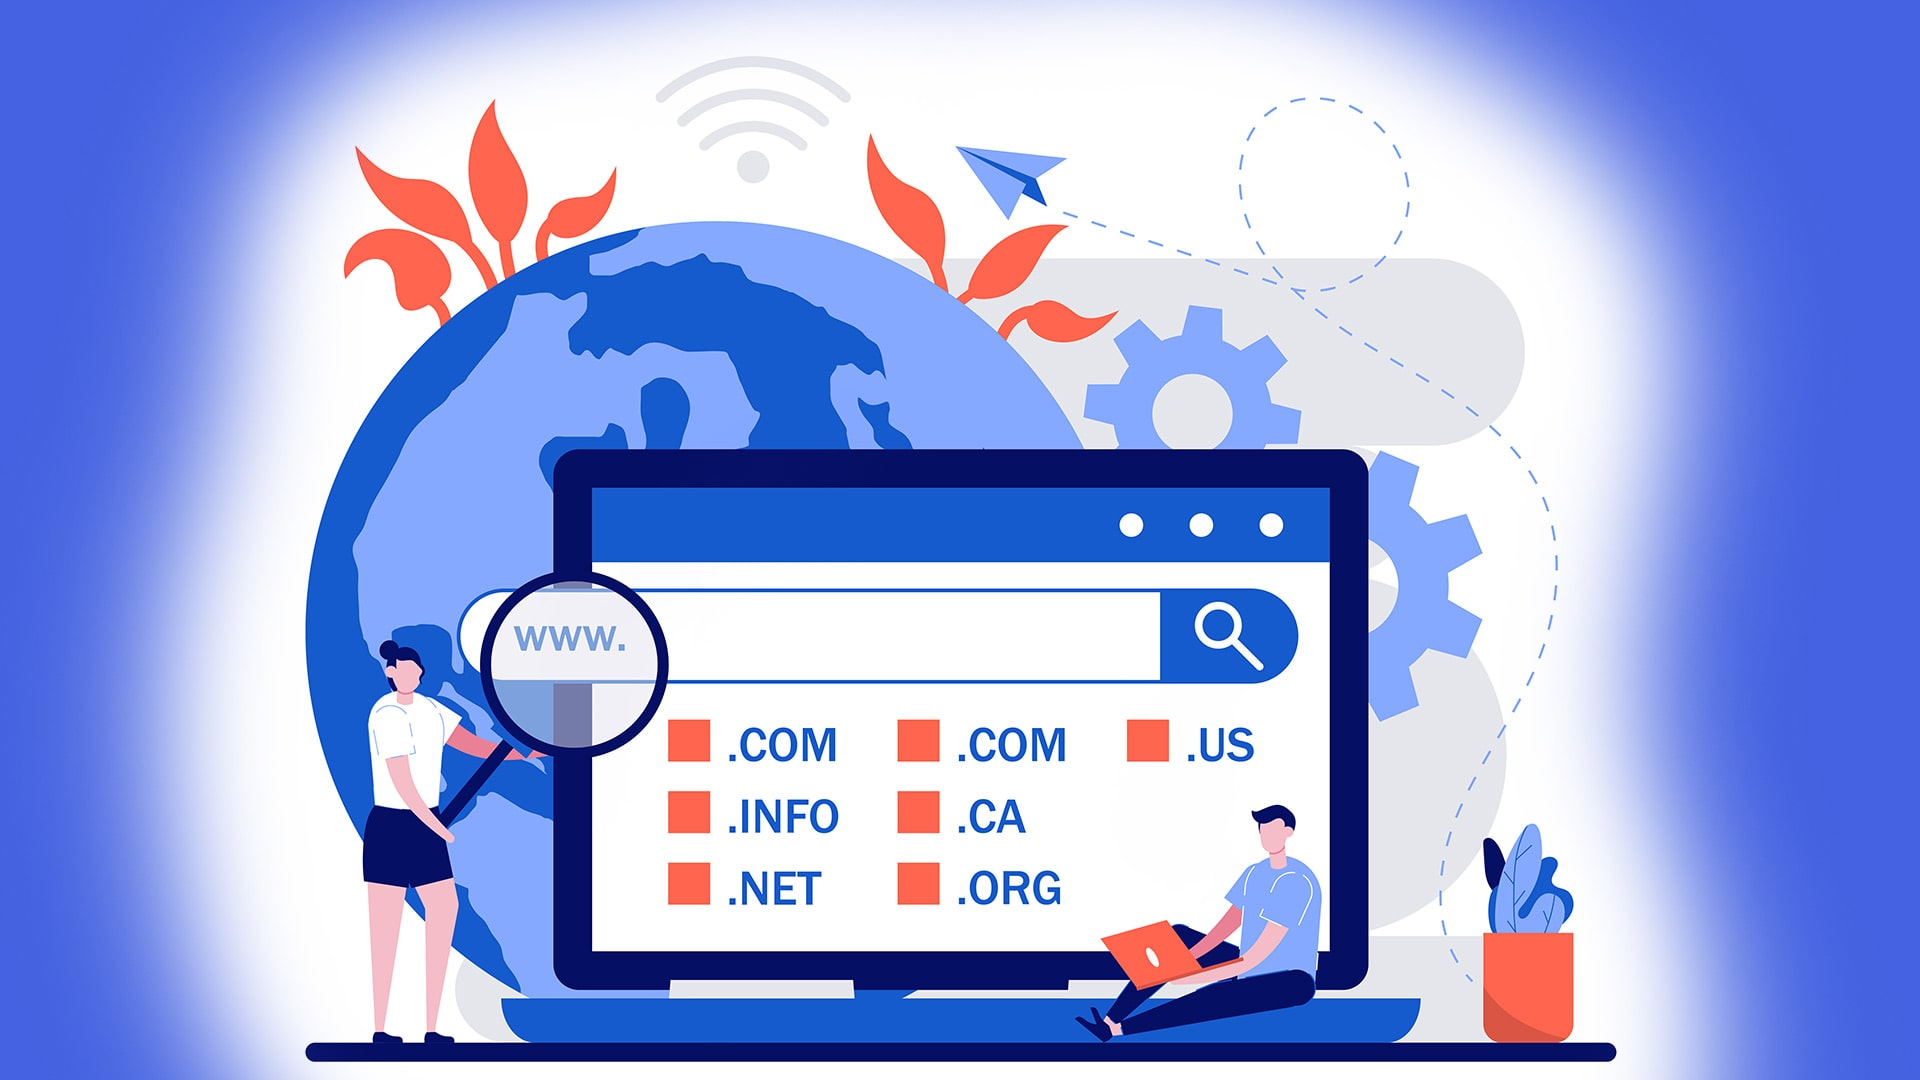 Cheap Domain Names - Direct any domain name you own to your website — anyone who types that domain name into their browser is taken directly to your website.